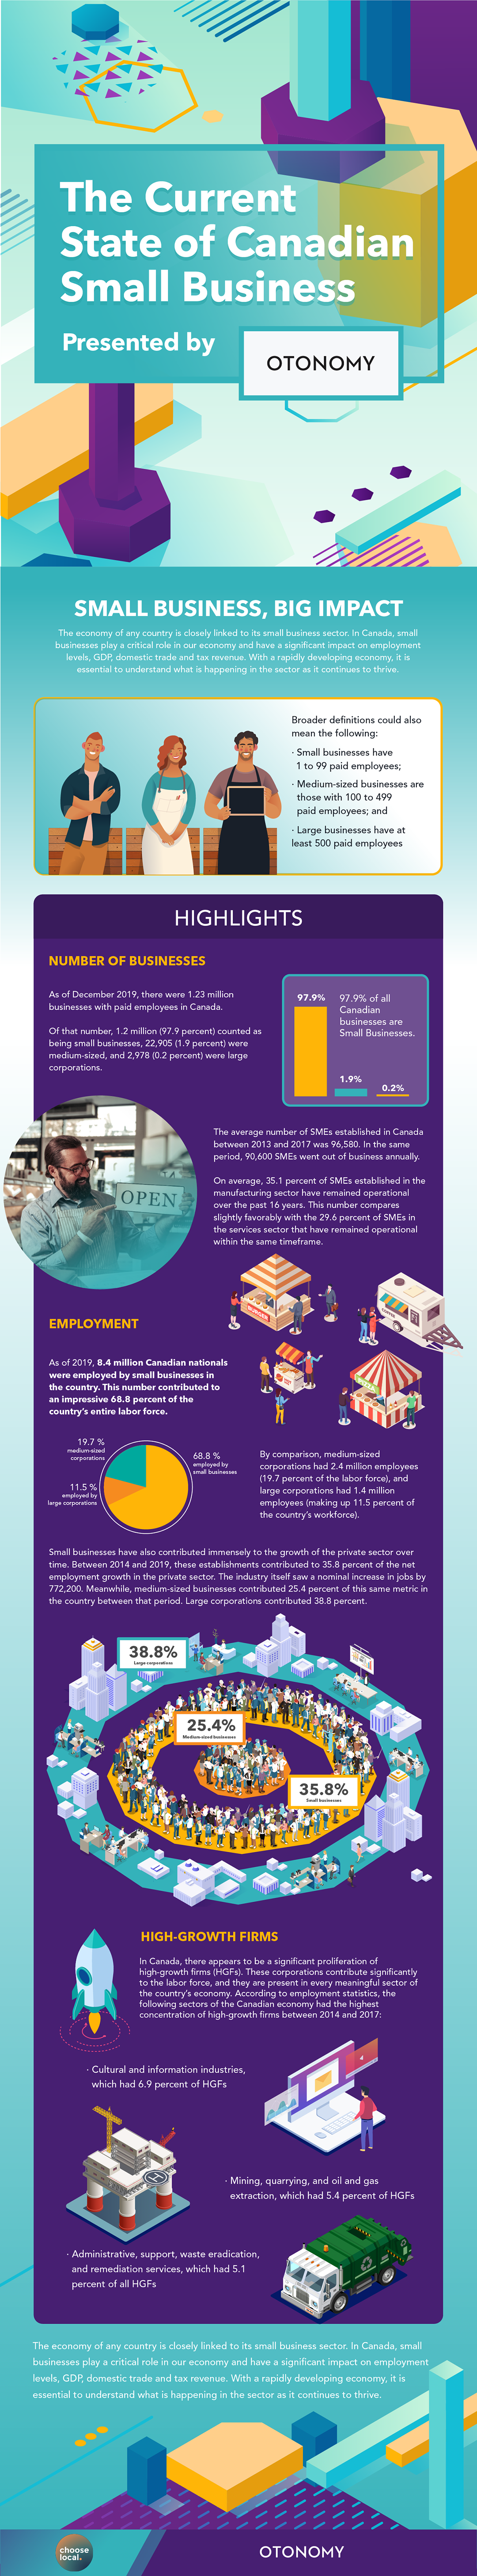 Infographic of the small business sector in Canada